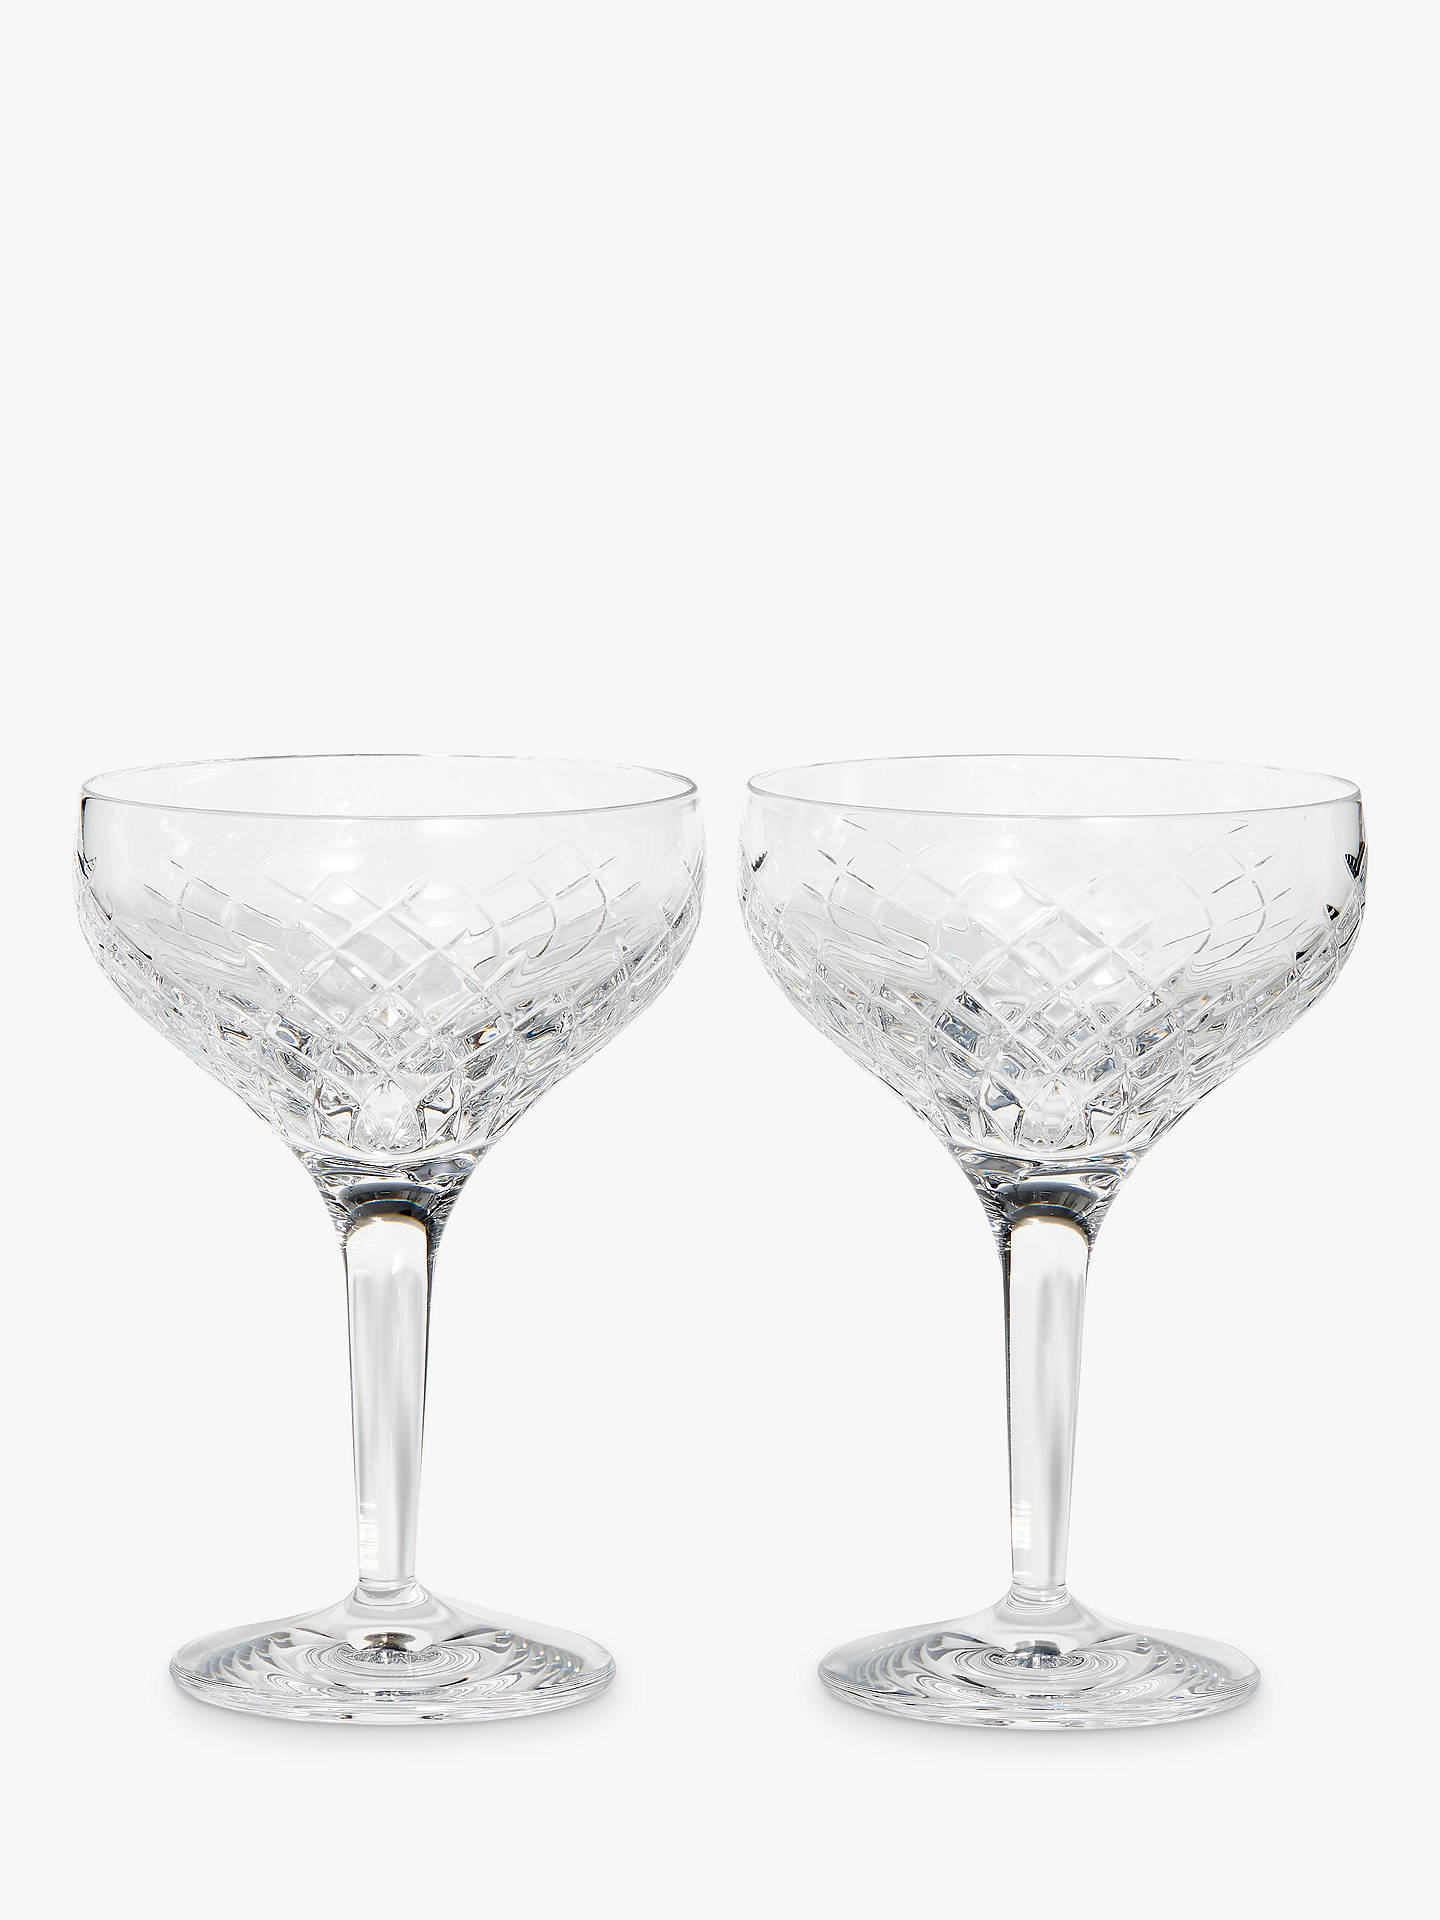 BuySoho Home Barwell Crystal Cut Champagne Coupe Glasses, 250ml, Set of 2 Online at johnlewis.com